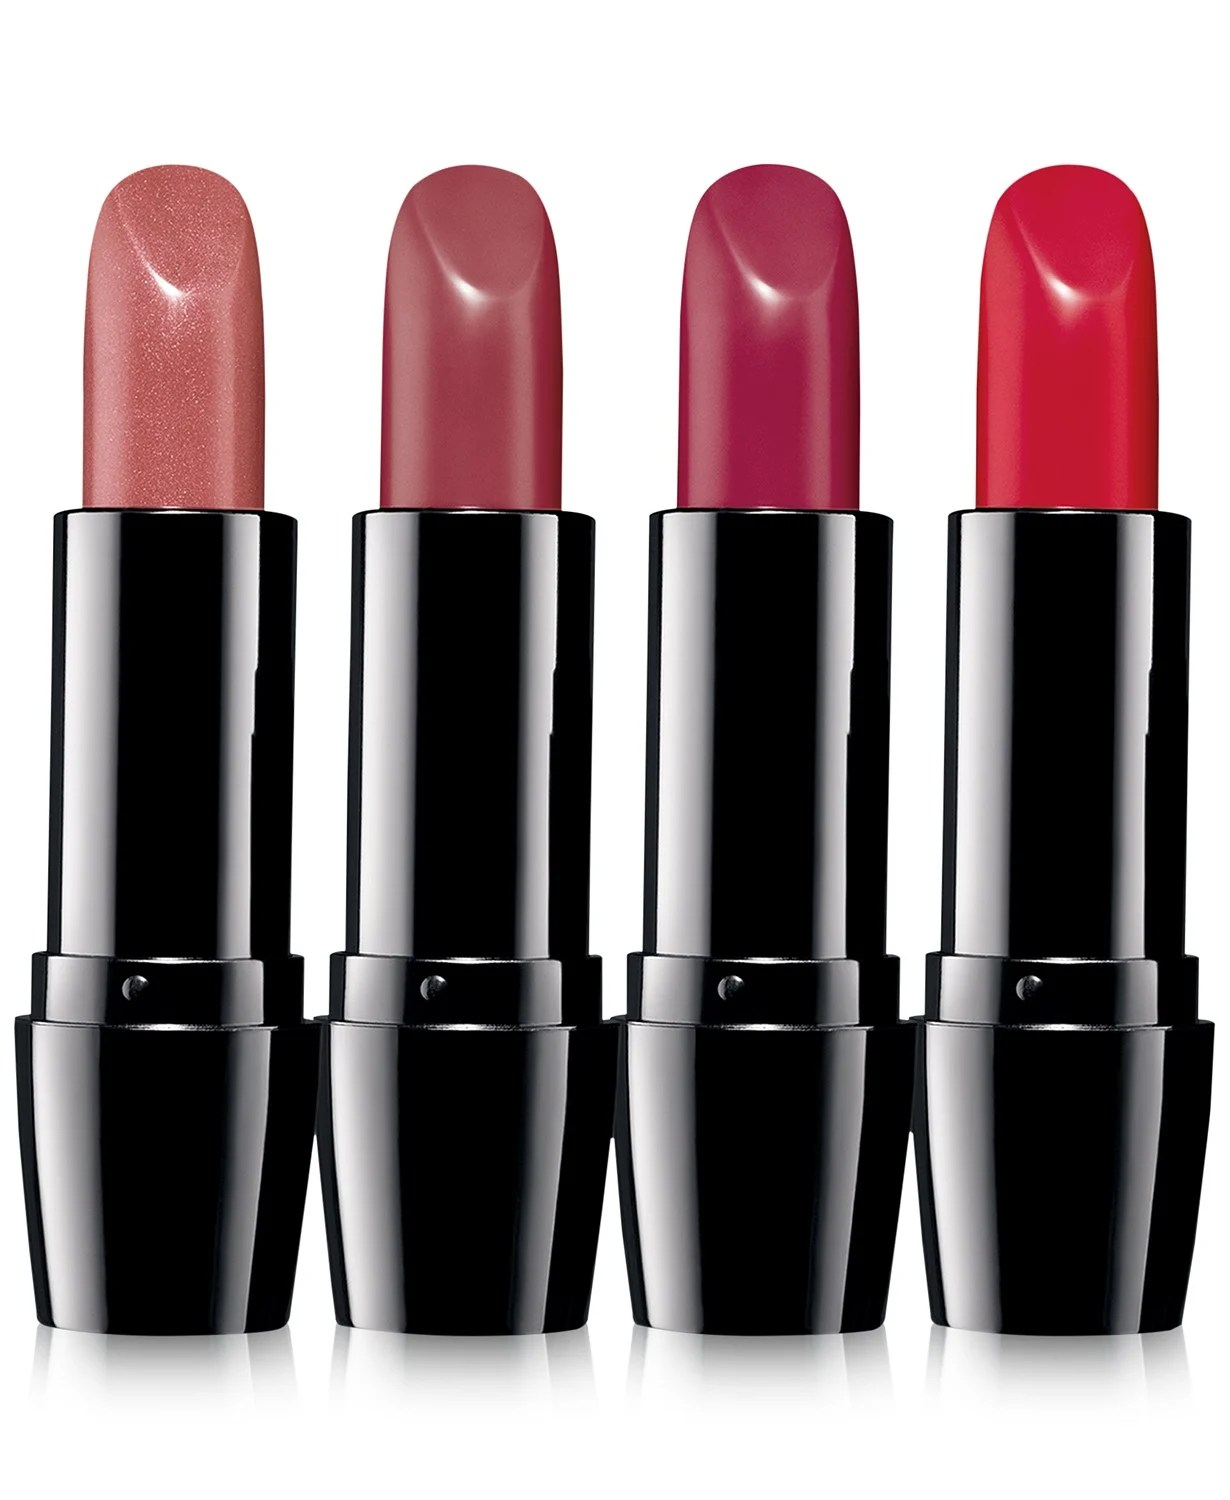 lancome color design red lip collection